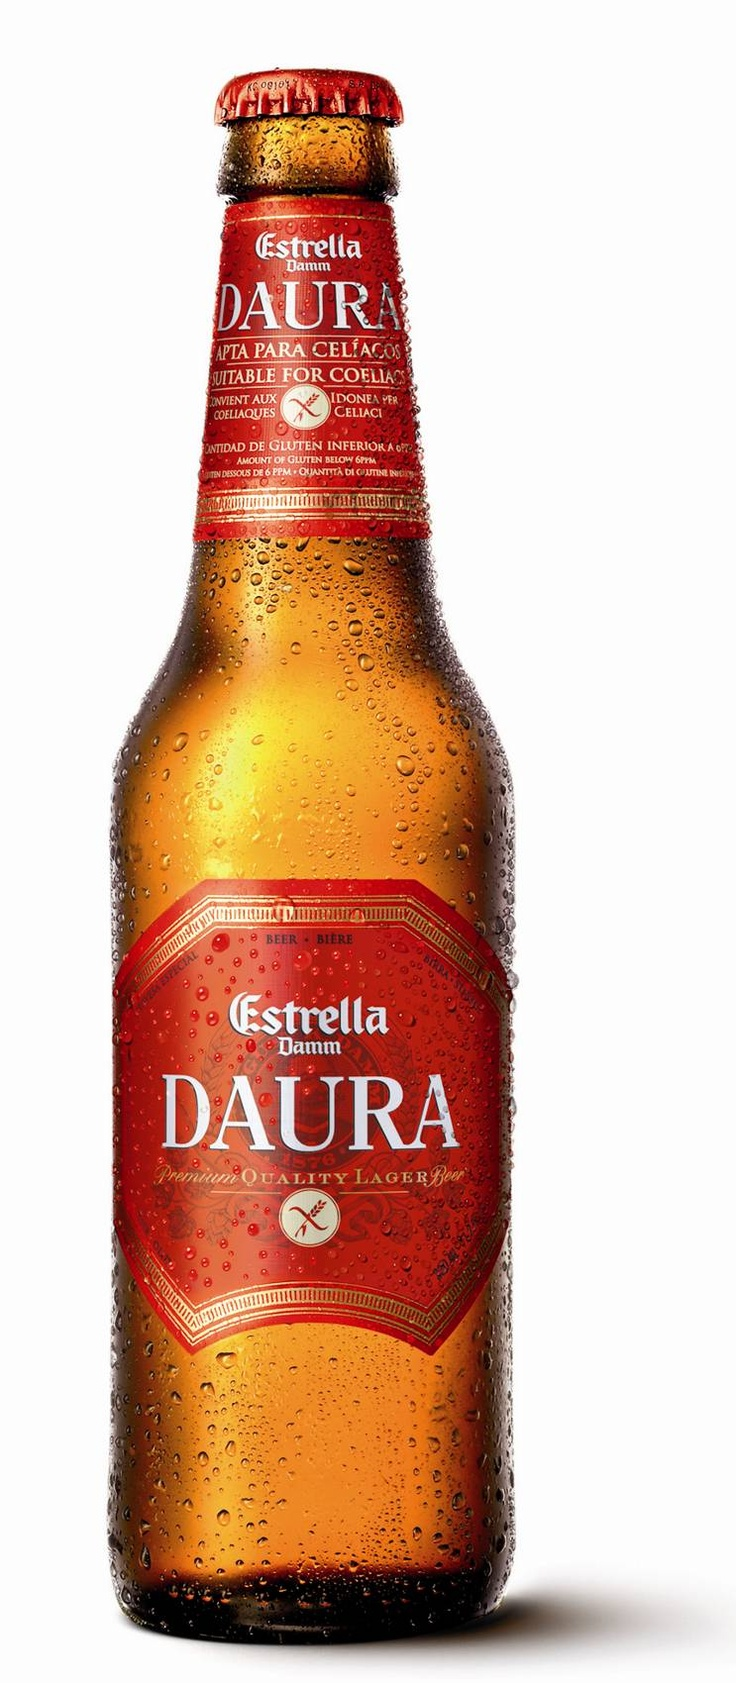 Cerveza Estrella Damm Daura.  This gluten-free beer made in Spain is suppose to be at the top of the gluten-free beer pyramid. Always did have a thing for Spanish beer!